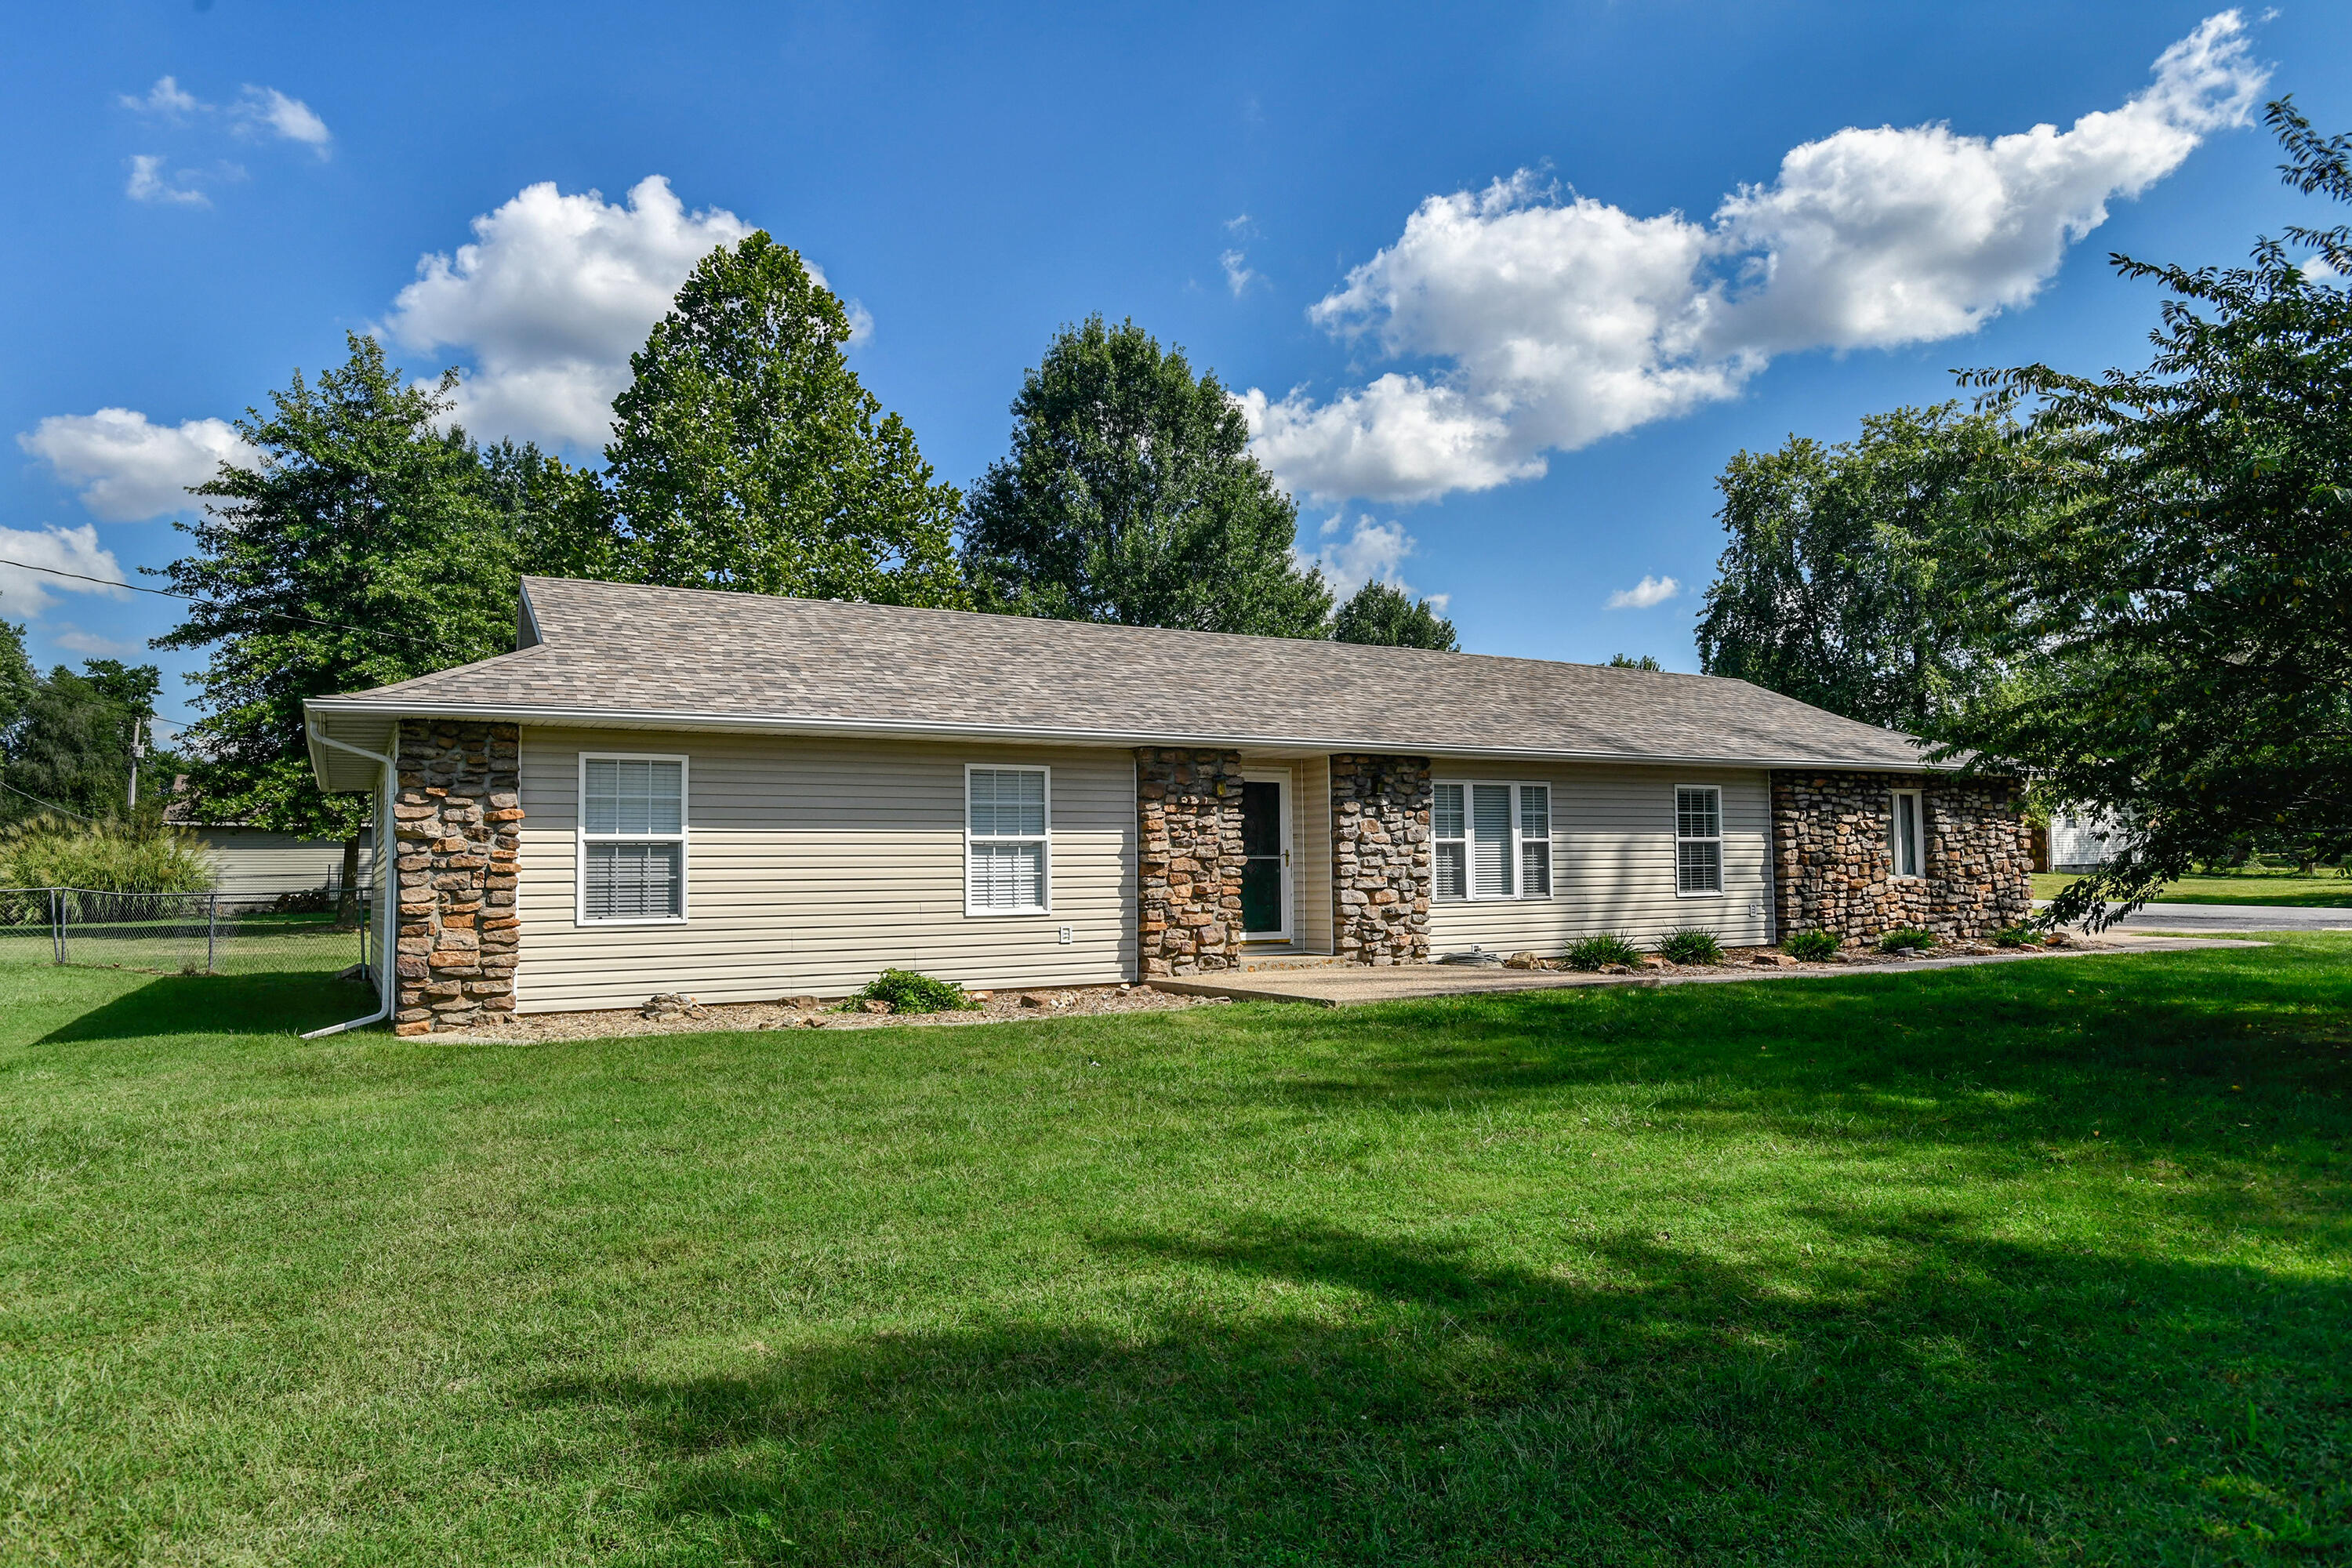 5228 South State Highway Ff Battlefield, MO 65619